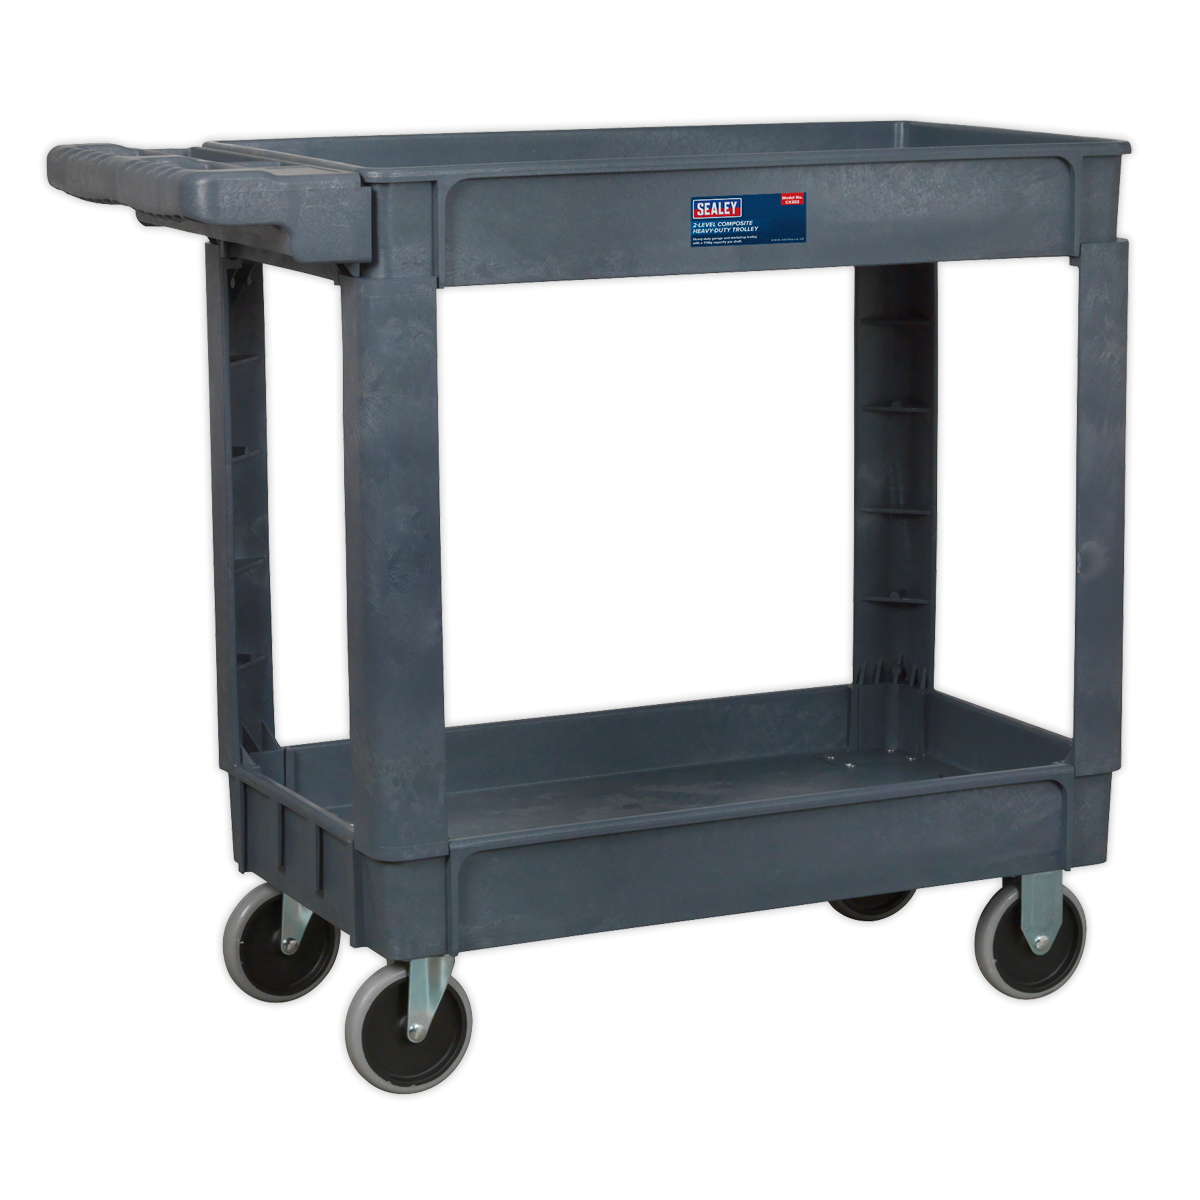 SEALEY TROLLEY WITH HANDLE 2-LEVEL COMPOSITE HEAVY DUTY